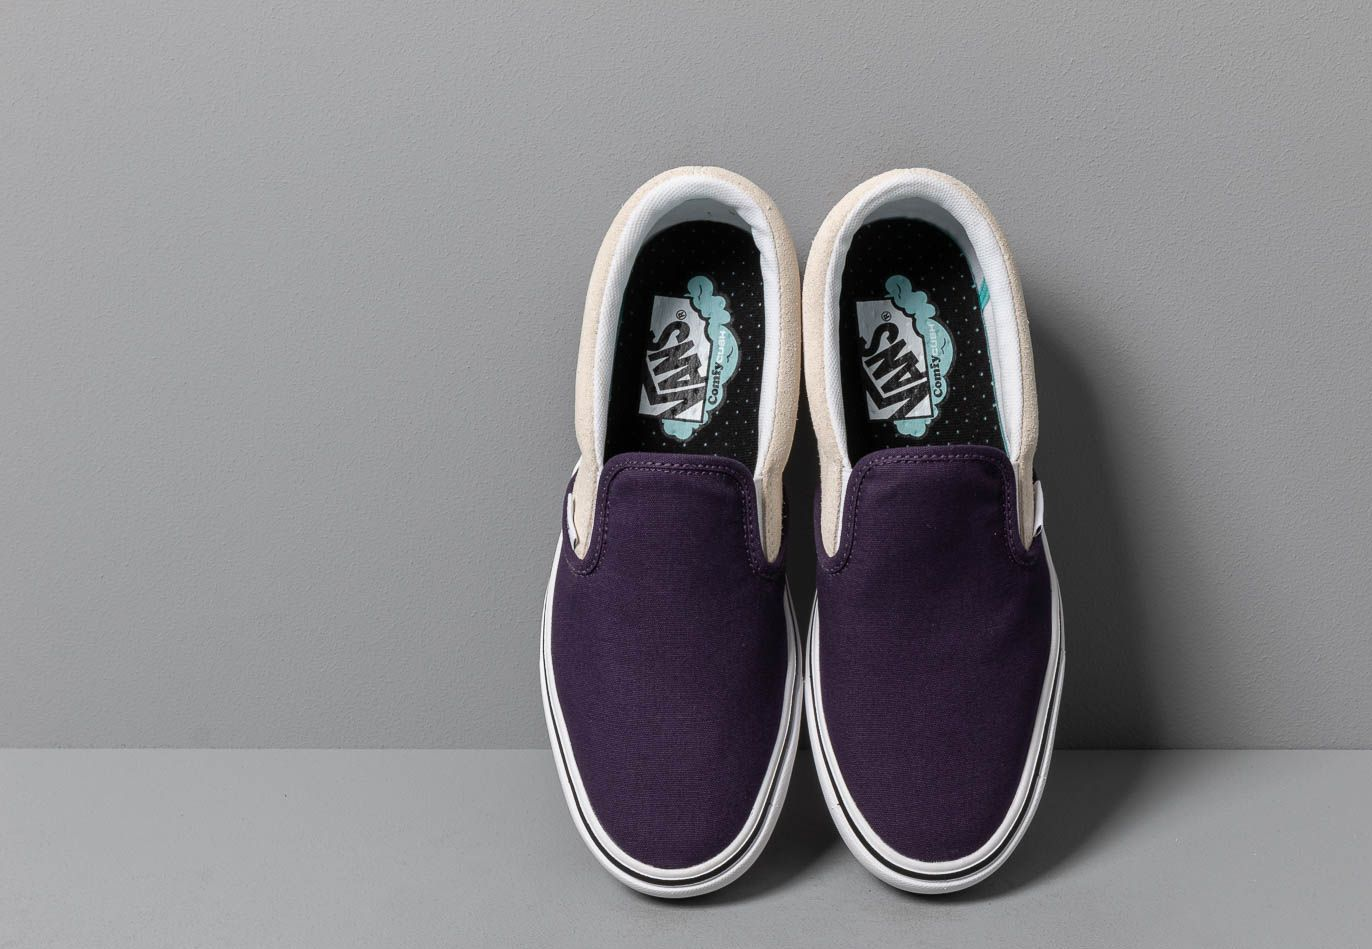 Vans ComfyCush Slip-On (Checkerboard) Mysterioso, Black